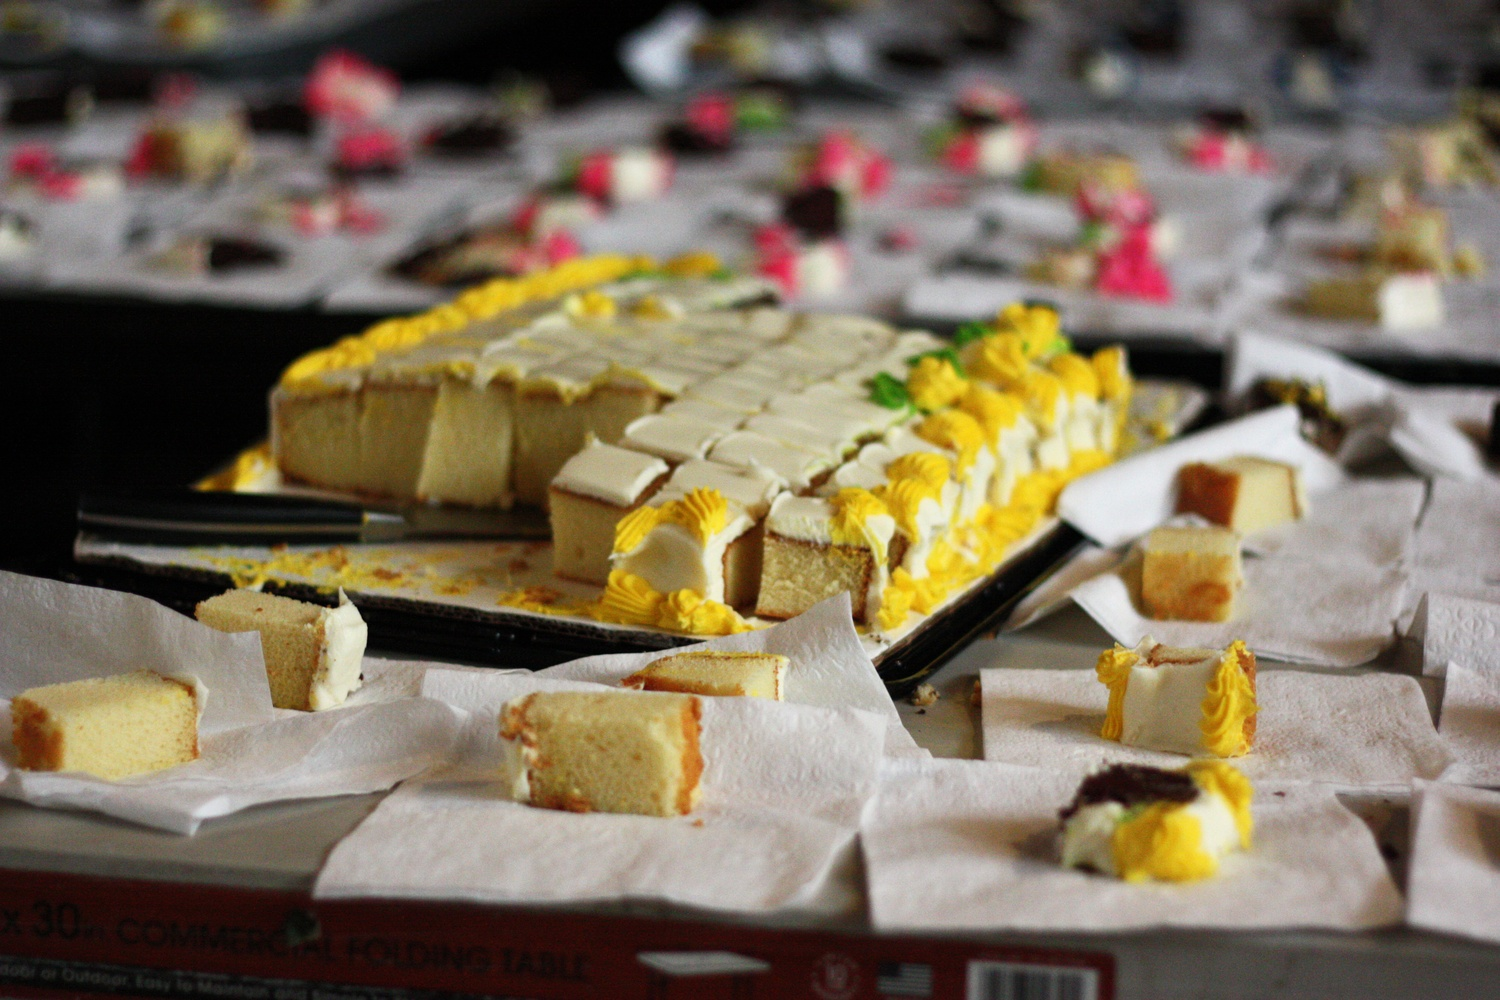 Slices of cake await the rush of students after the first CS50 lecture.